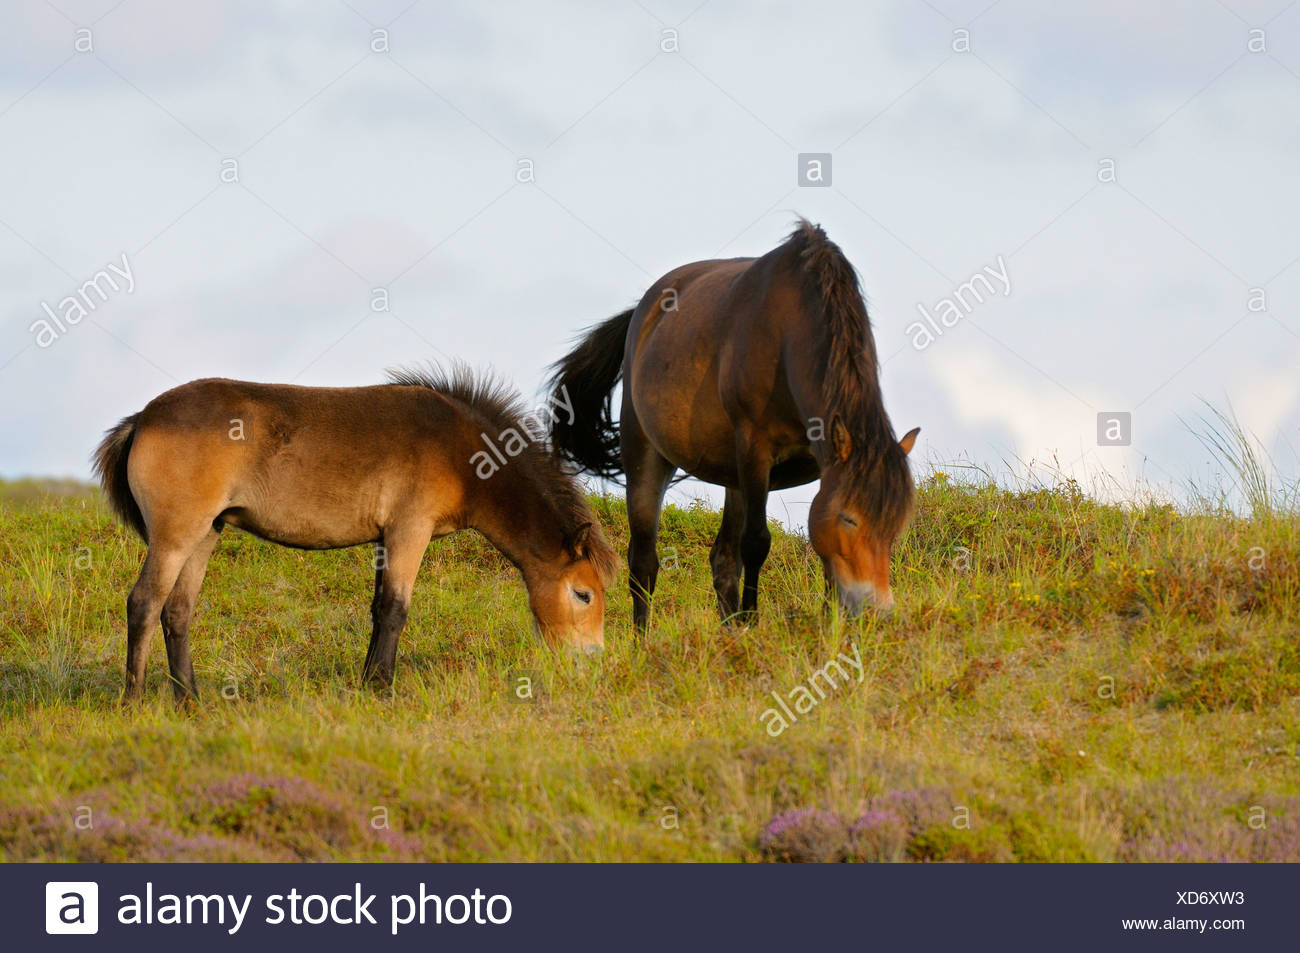 Exmoor pony (Equus przewalskii f. caballus), mare and foal grazing in meadow, Netherlands, Texel, Duenen von Texel Nationalpark - Stock Image